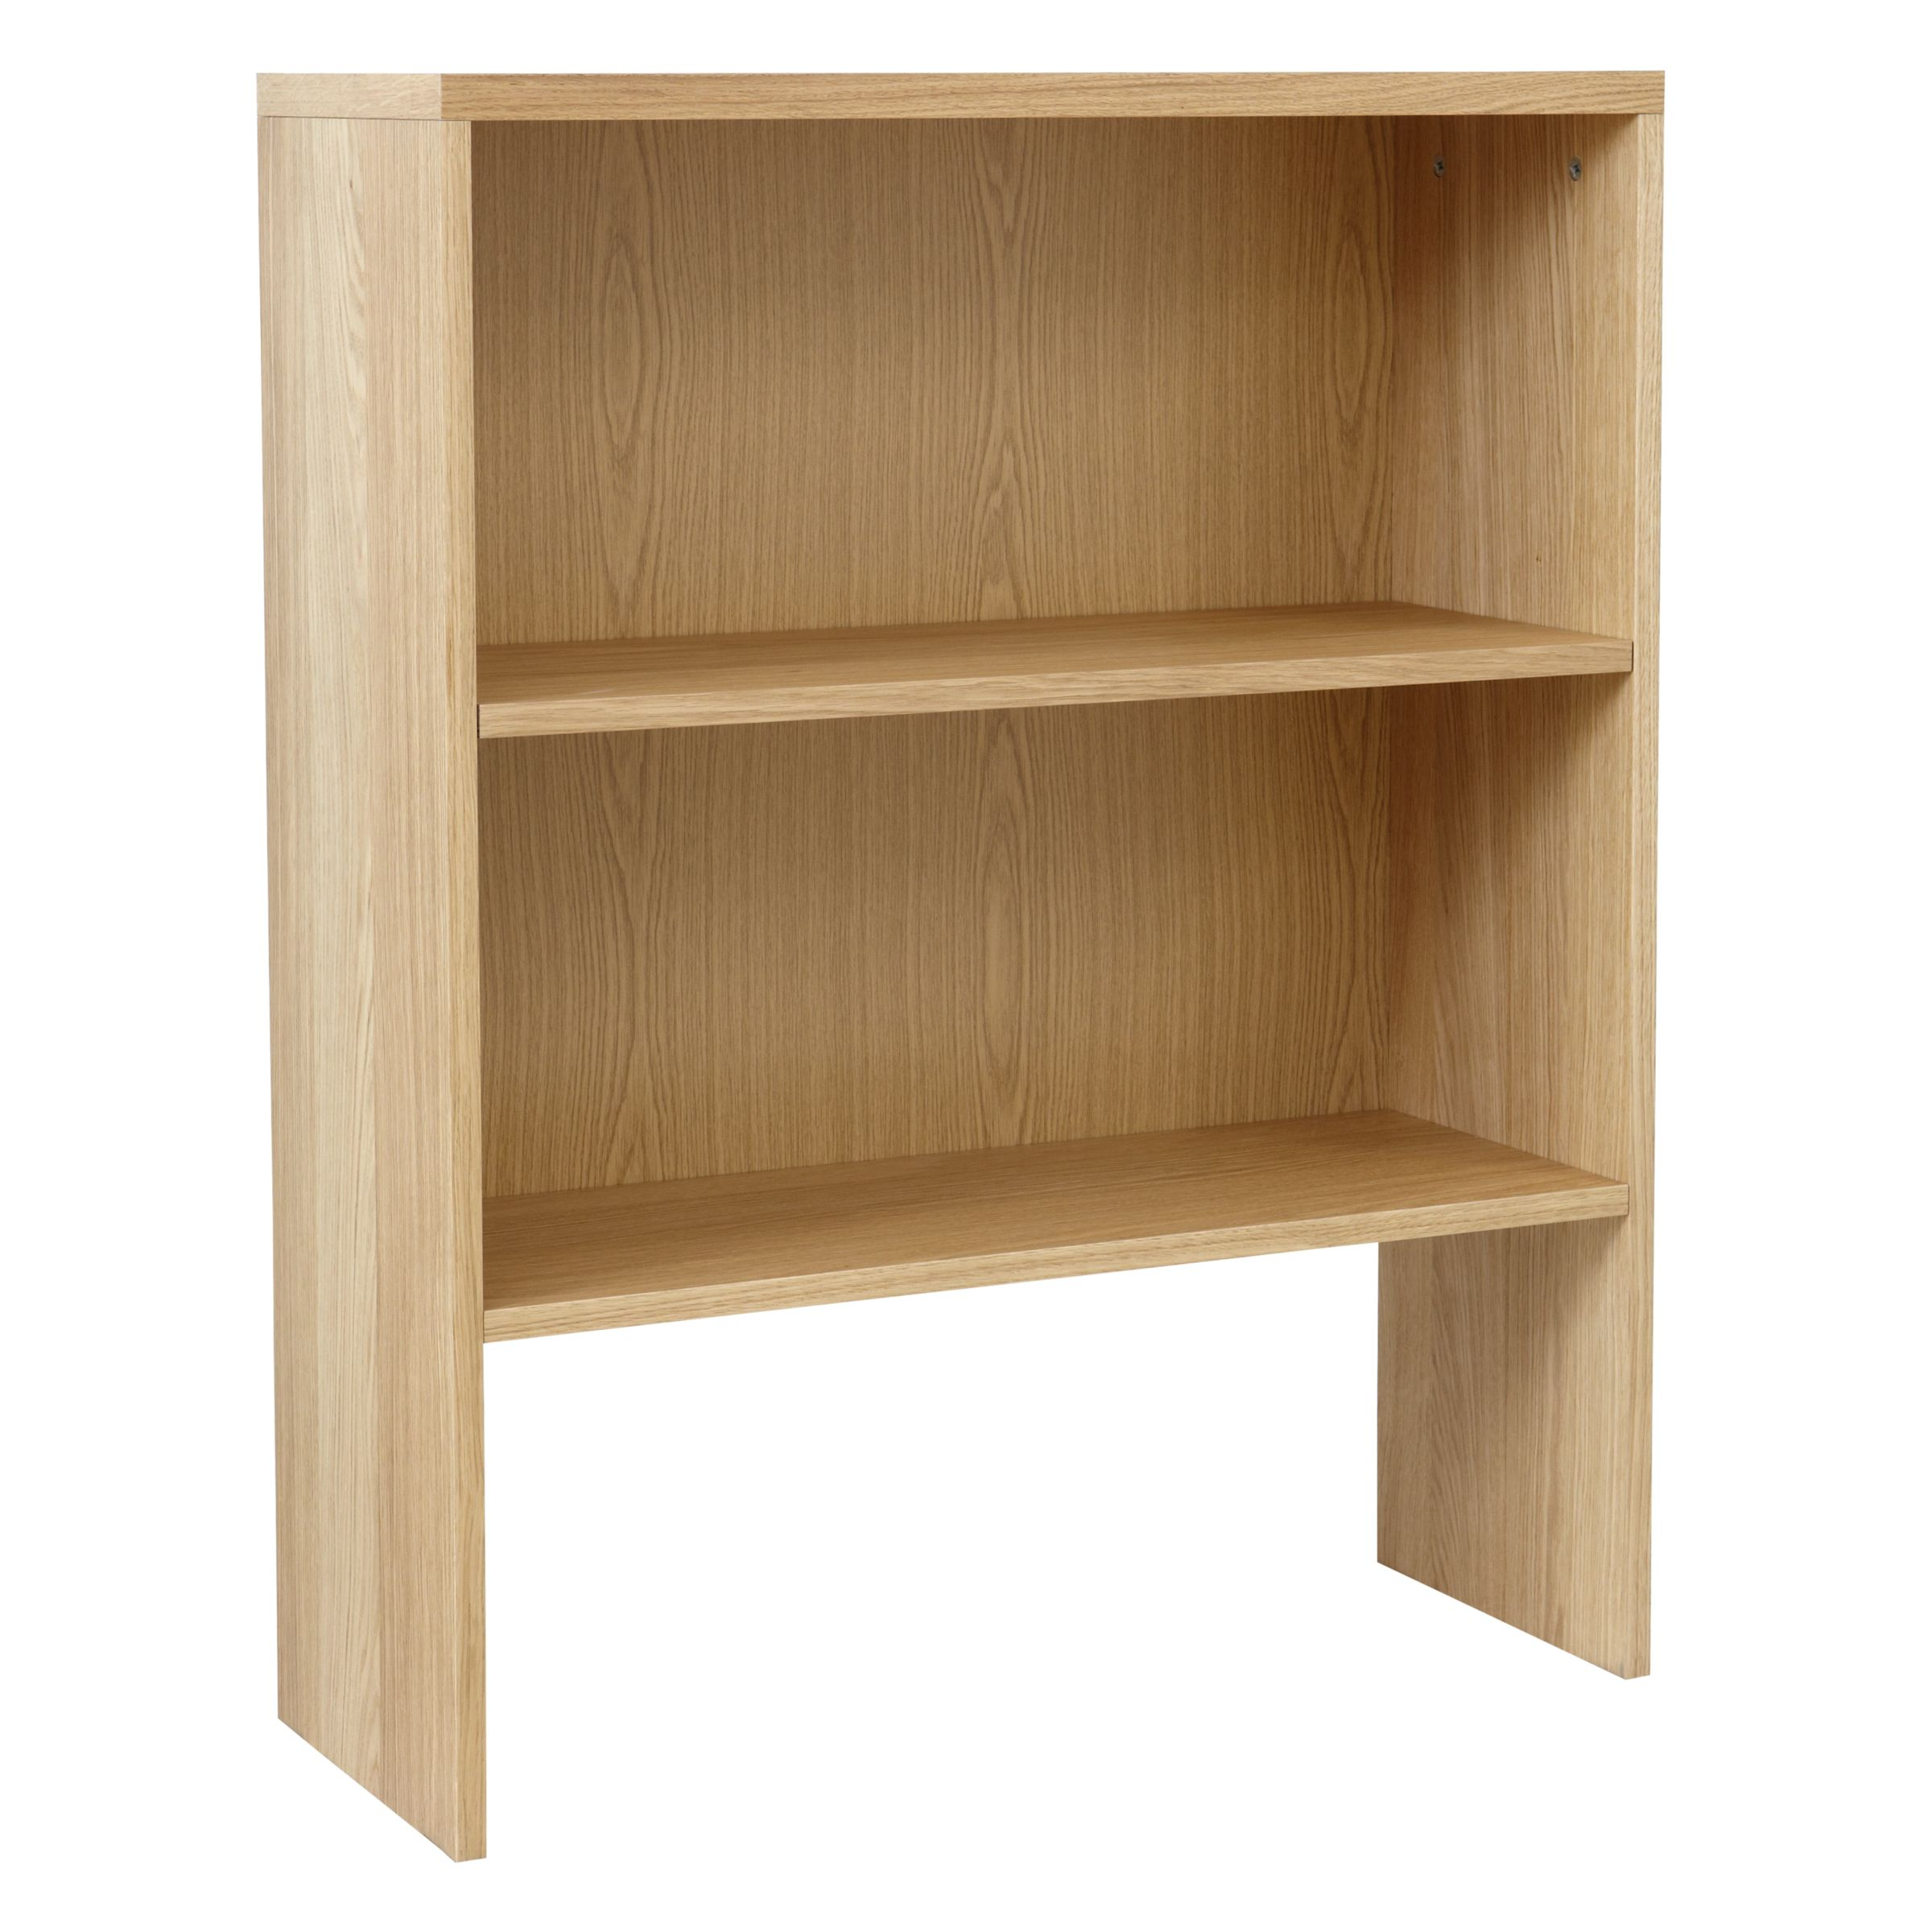 John Lewis Abacus Top Fitting Wide Bookcase At John Lewis